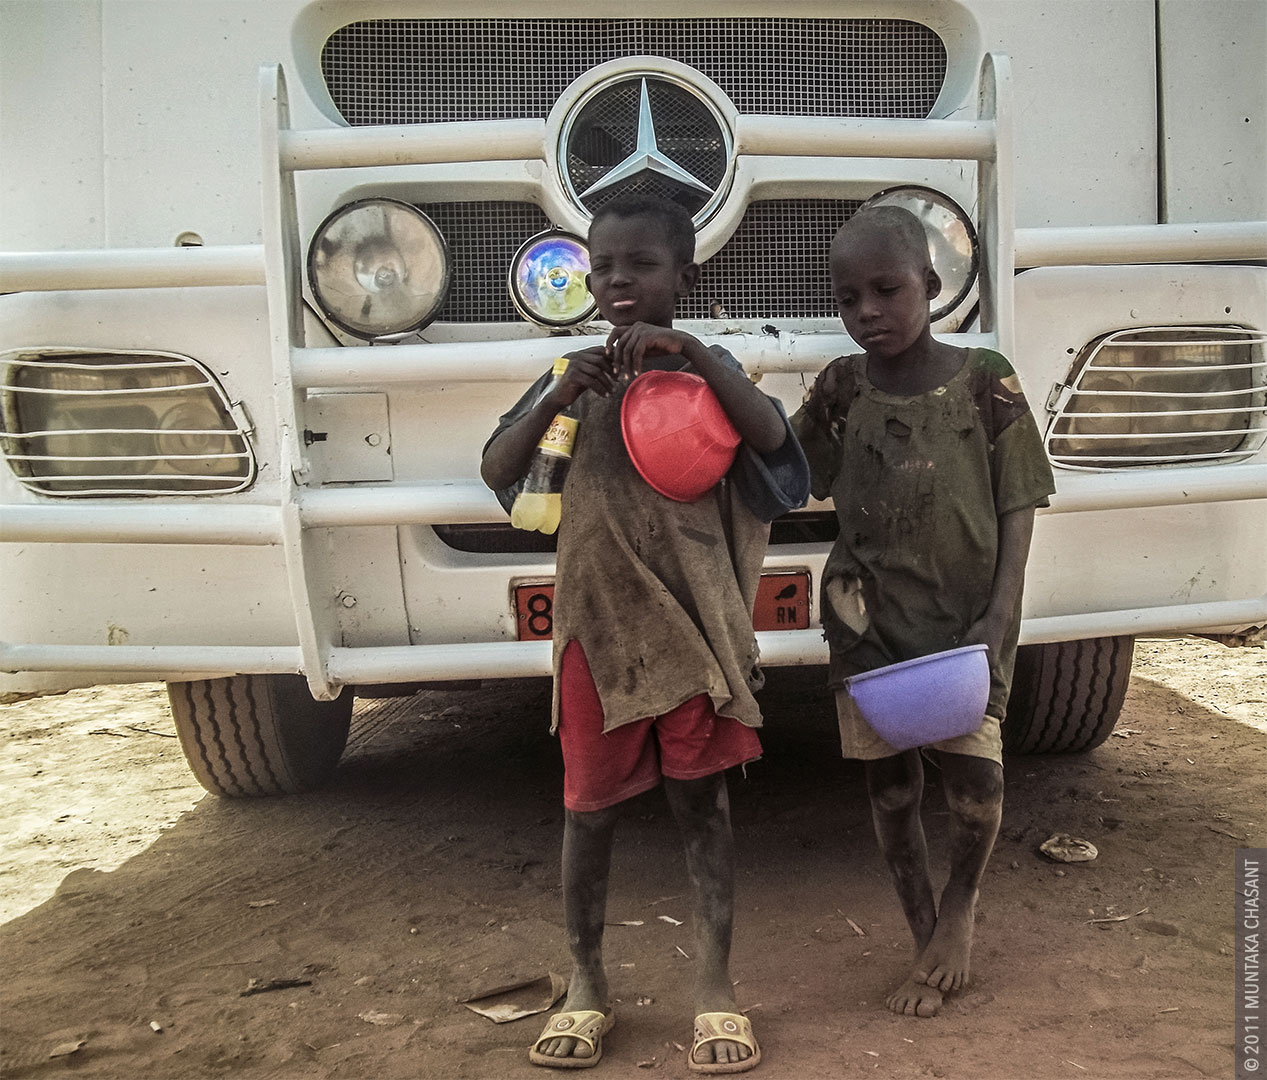 Talibe Child Beggars in Niger, West Africa, by Muntaka Chasant